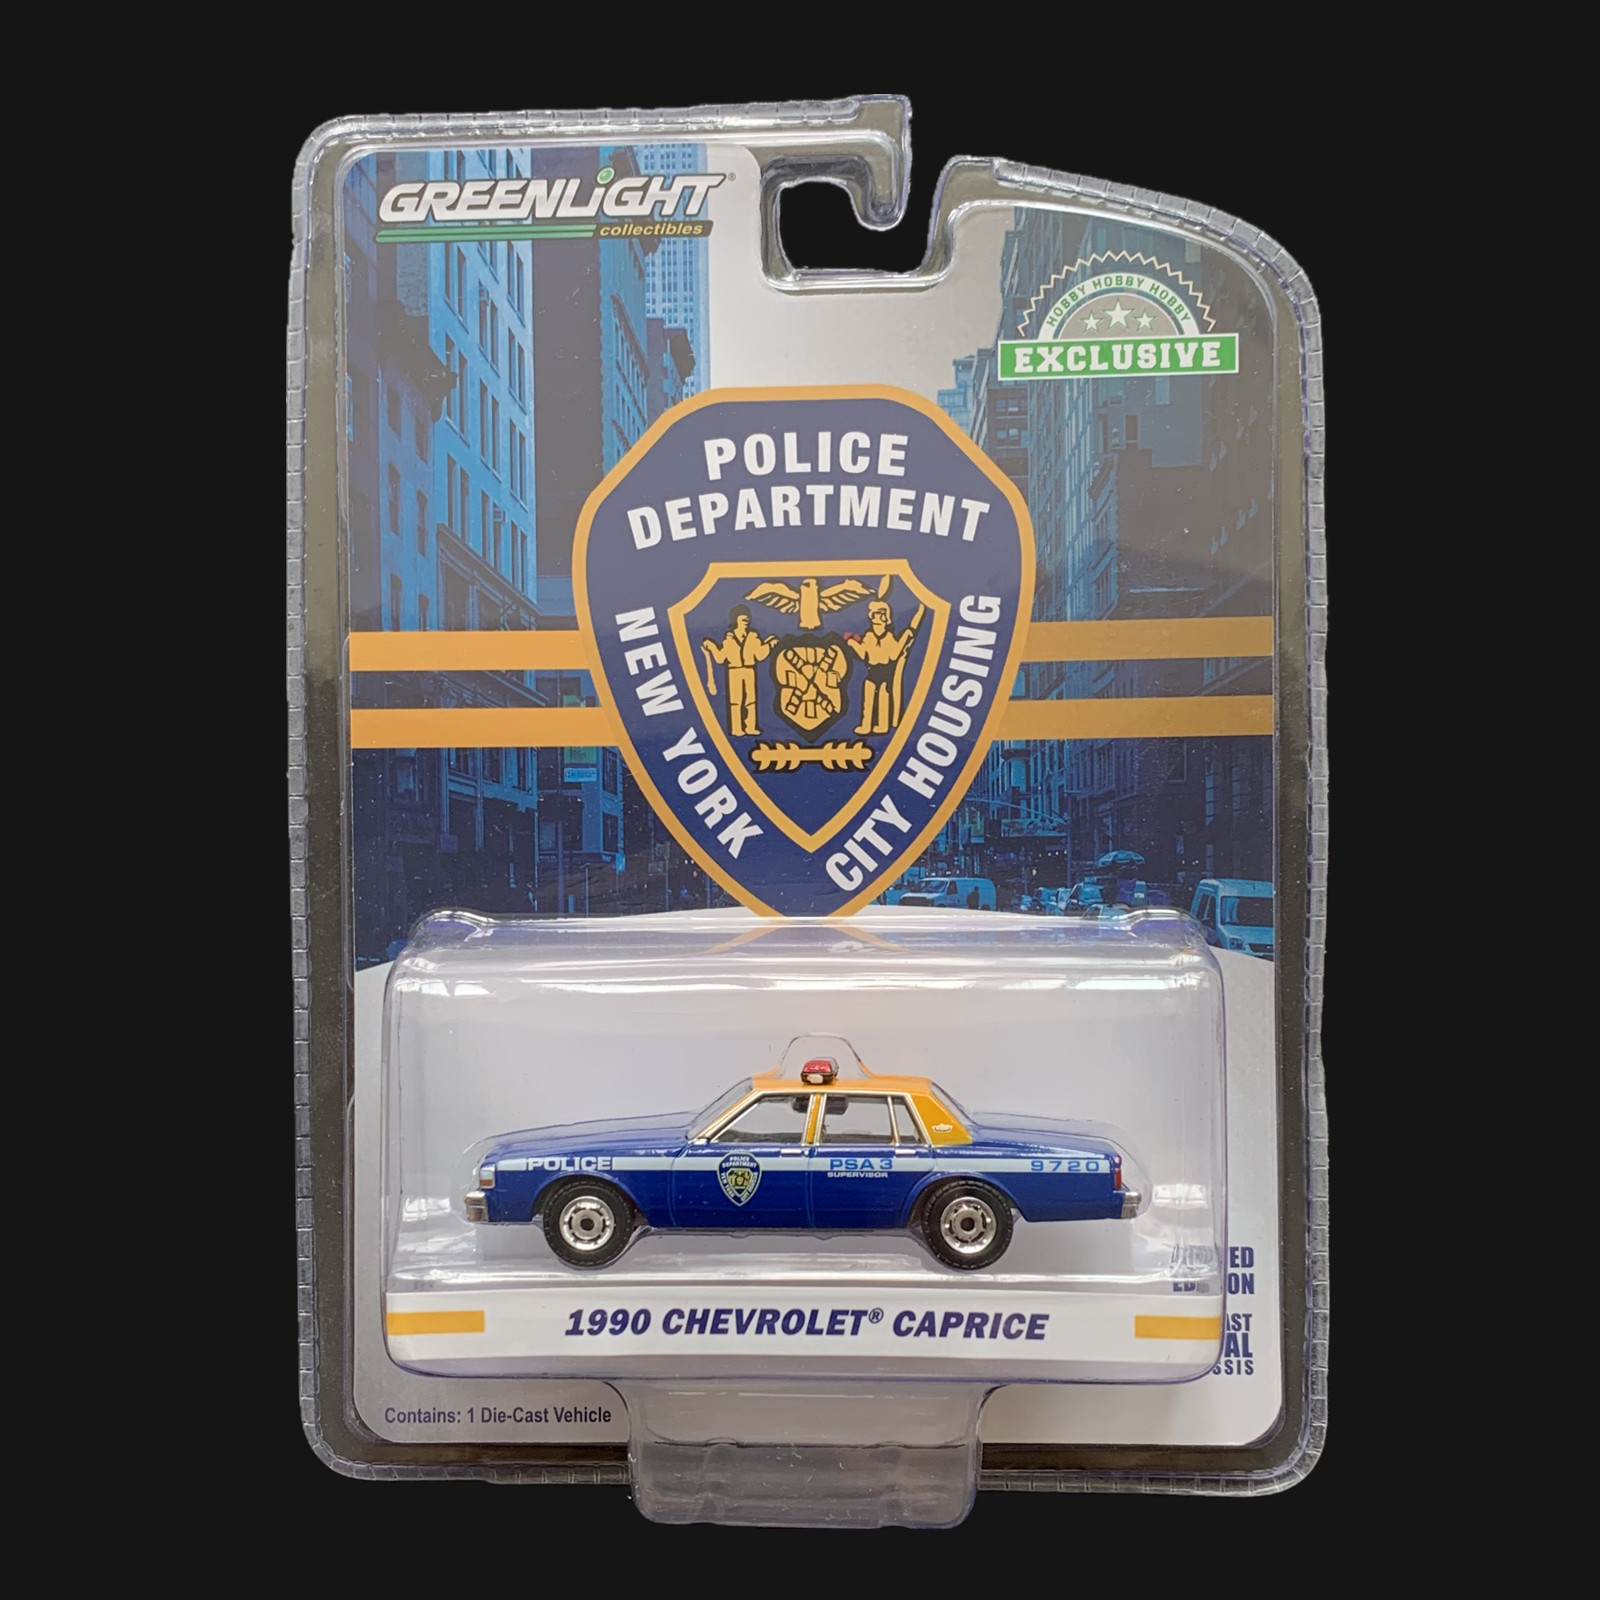 Greenlight Cars 1/64 1990 <font><b>Chevrolet</b></font> Caprice police car Collector Edition Metal Diecast Model Car Kids Toys Gift image